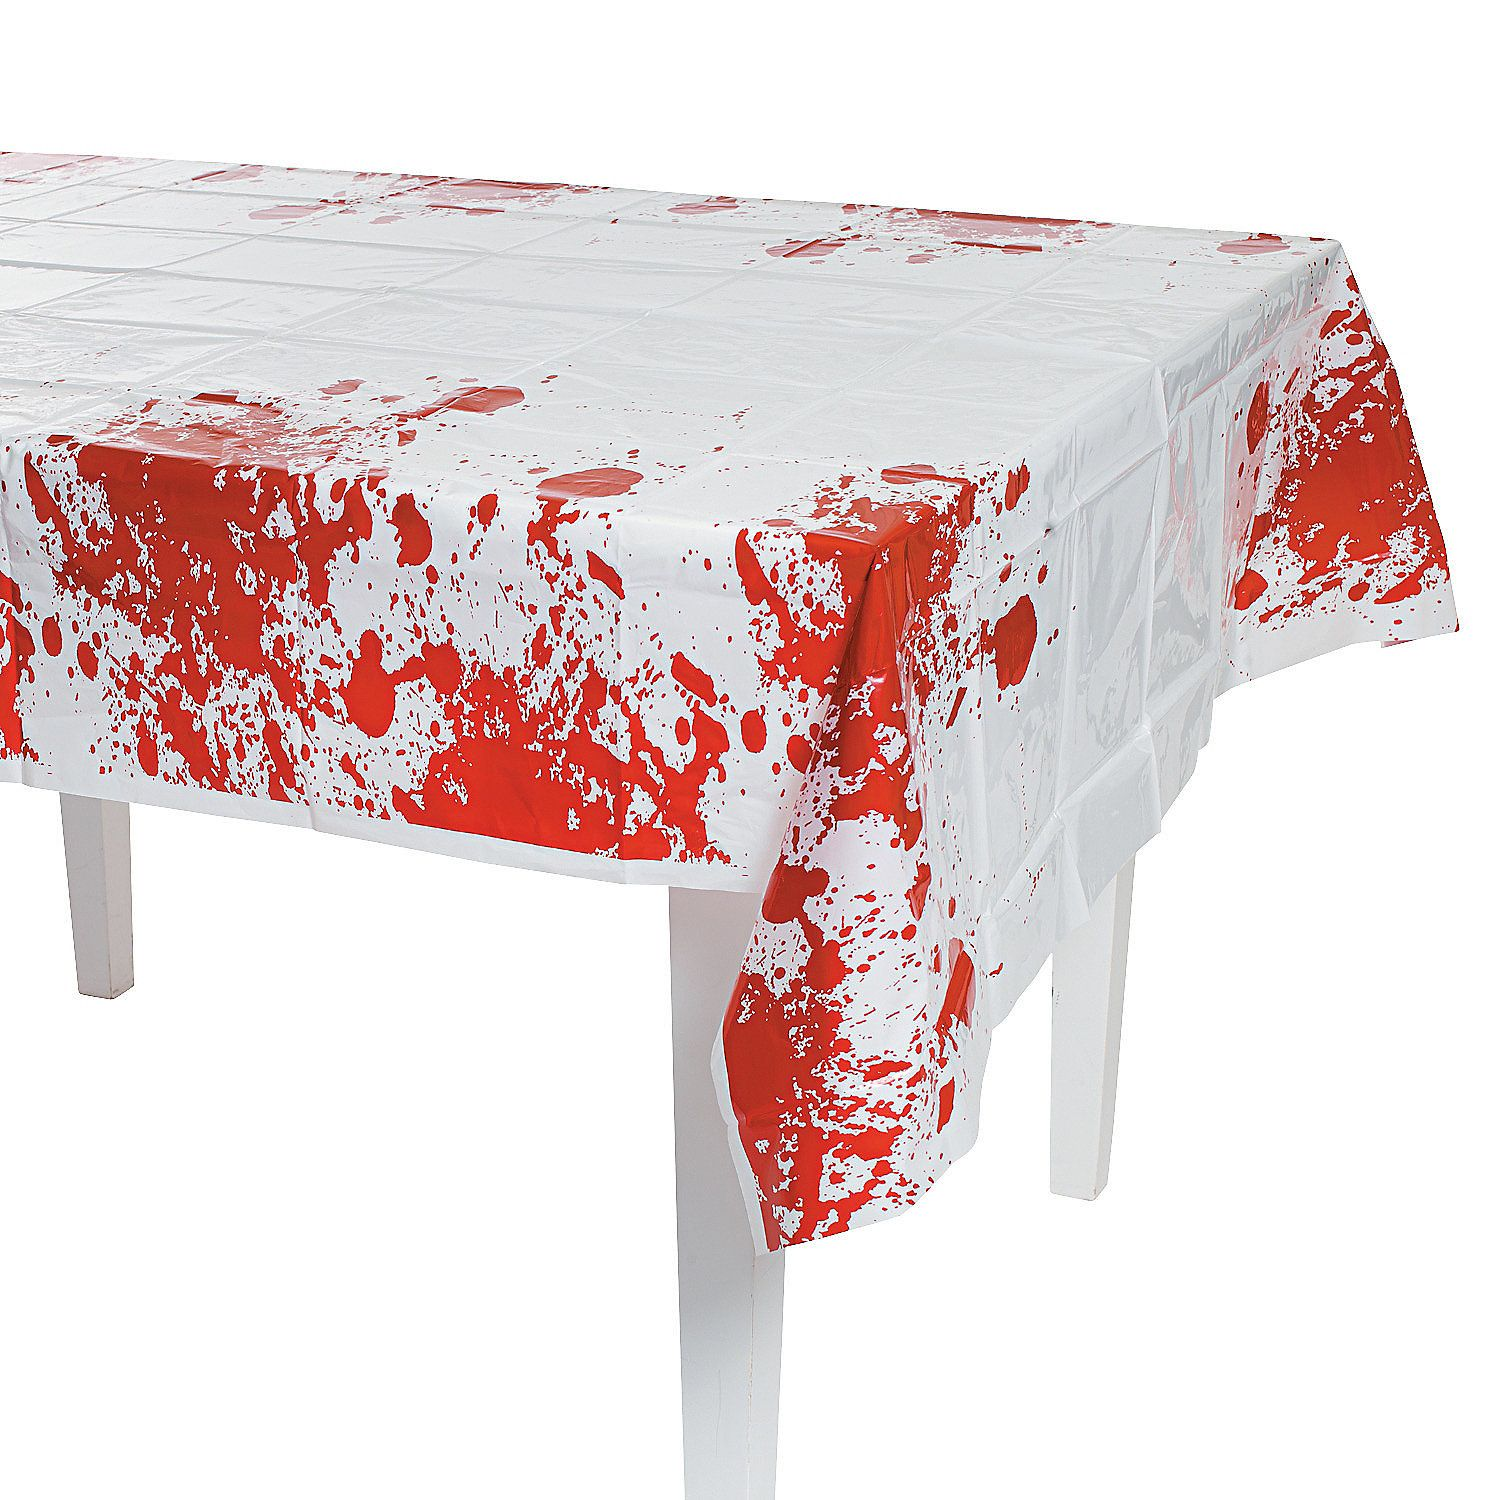 Zombie Party Plastic Tablecloth Zombie party Table covers and